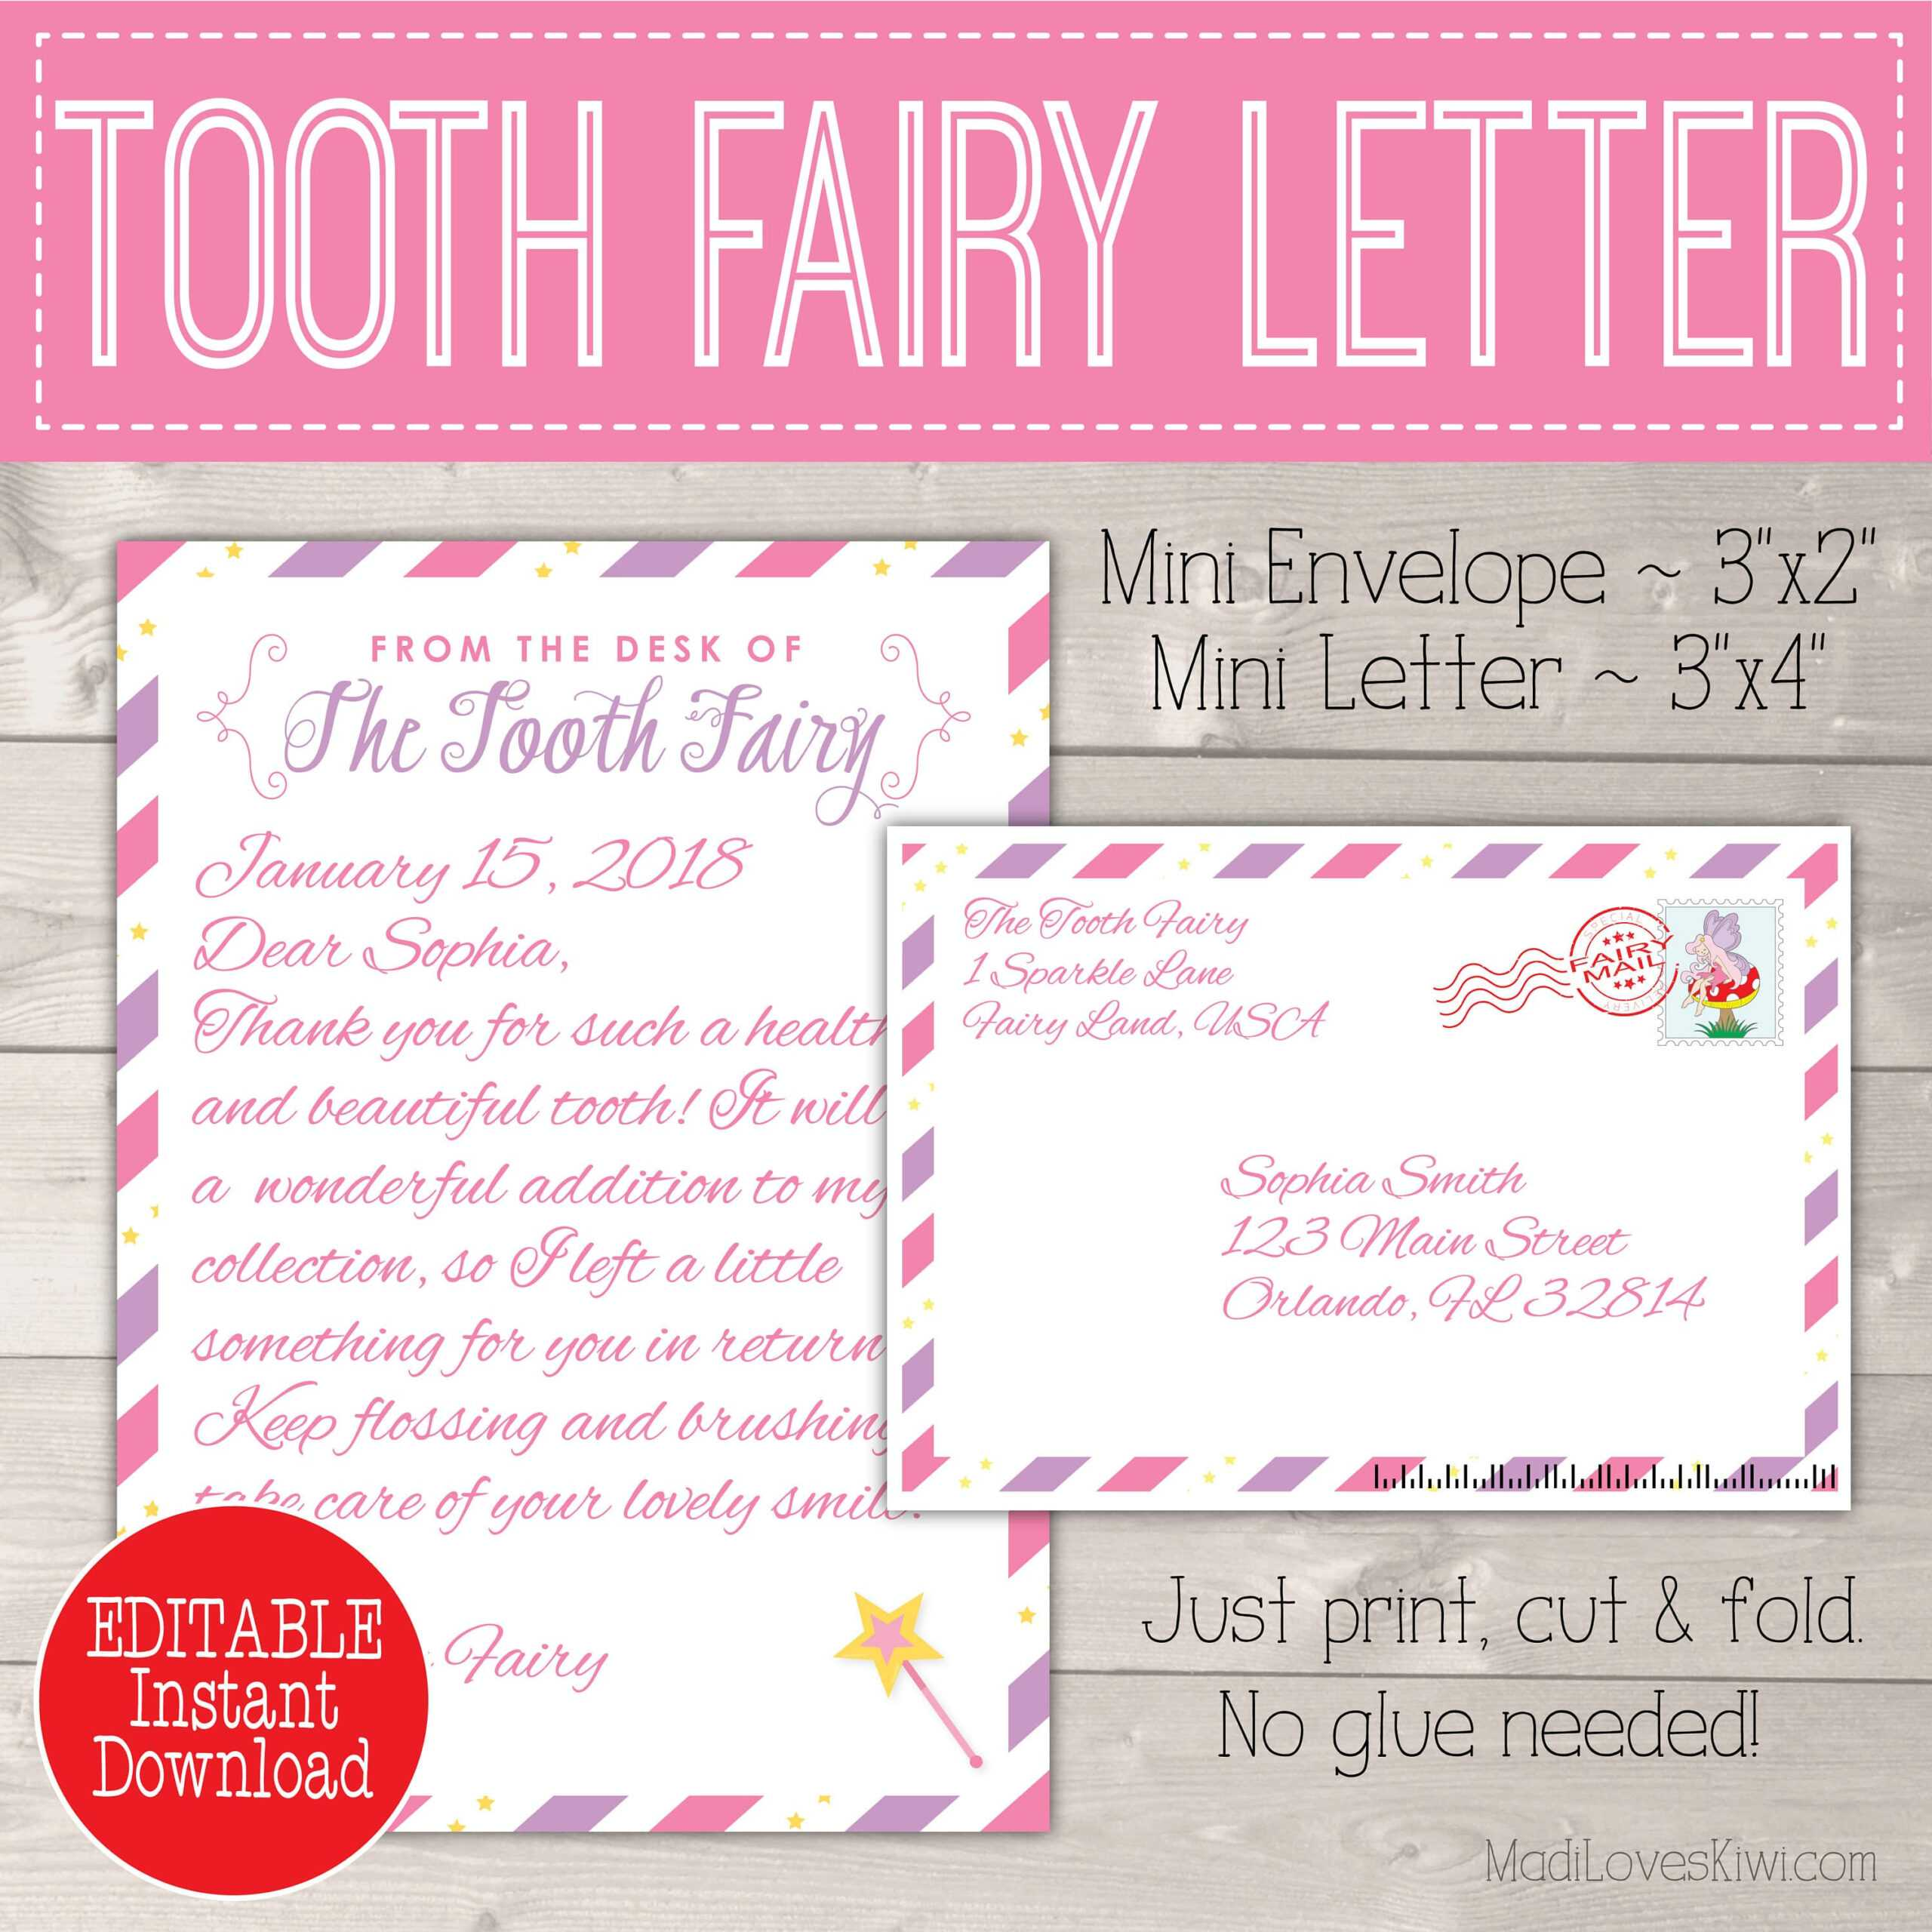 Editable Tooth Fairy Letter With Envelope | Printable Pink Regarding Tooth Fairy Certificate Template Free